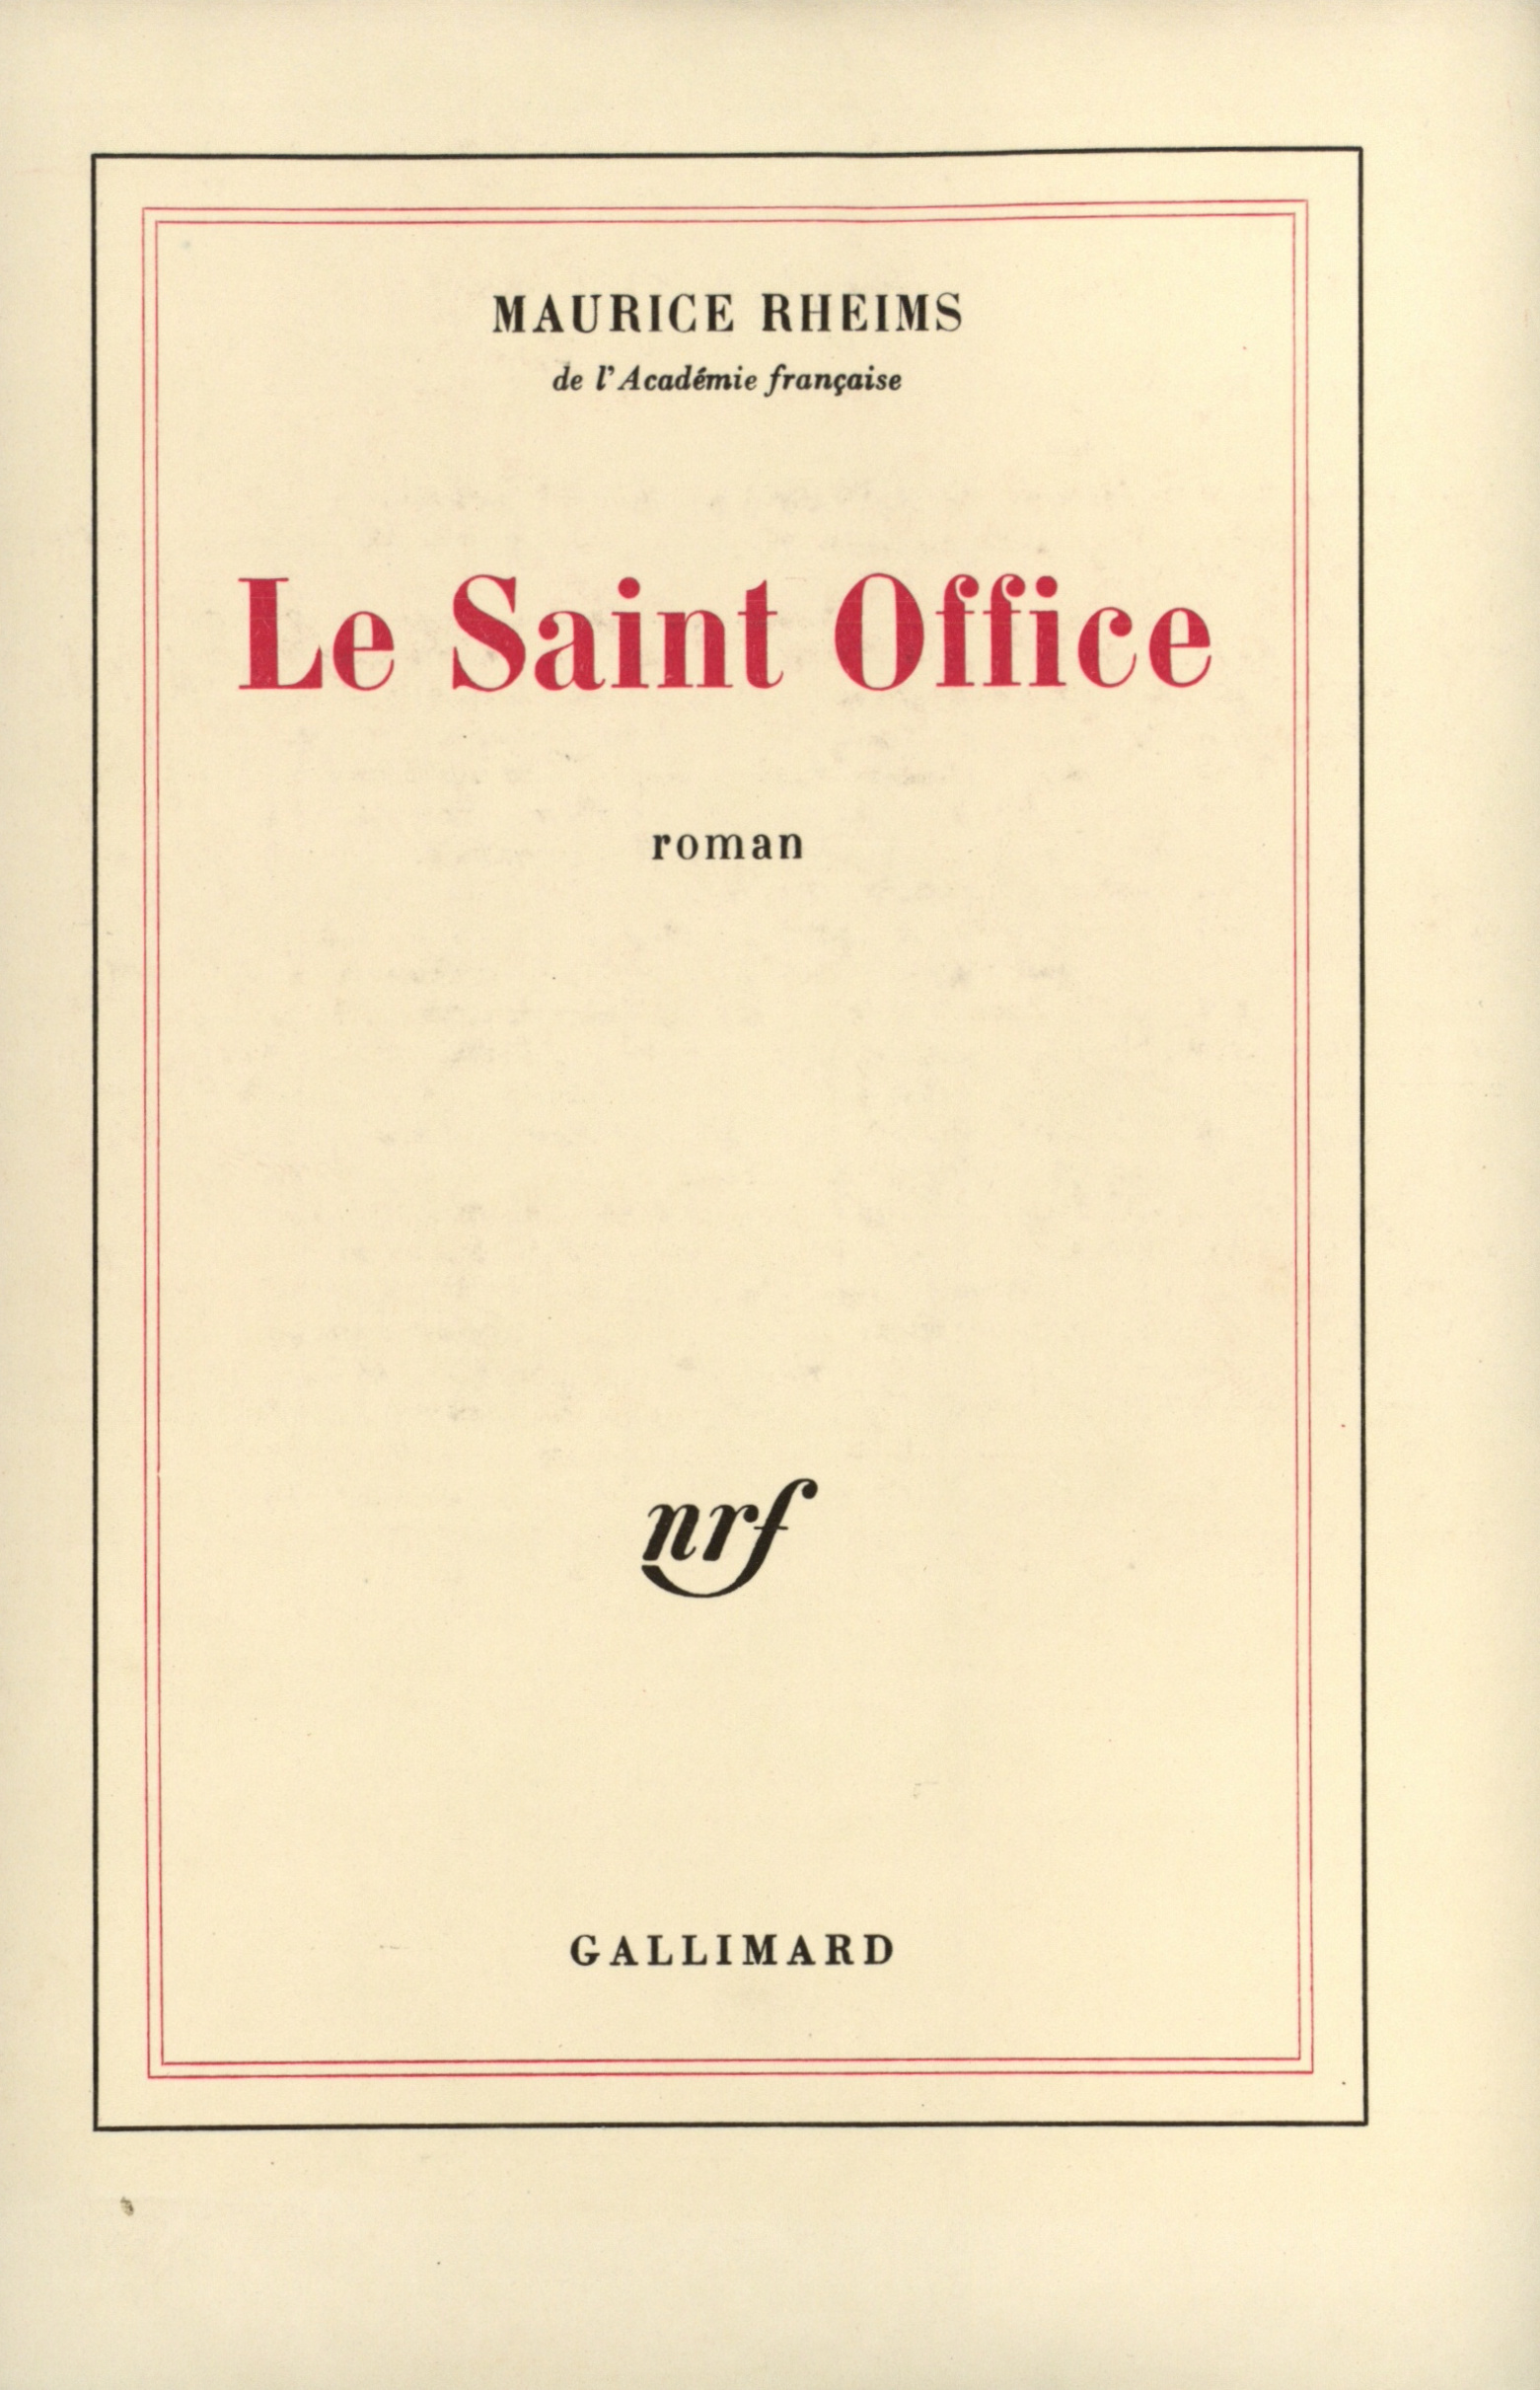 LE SAINT OFFICE